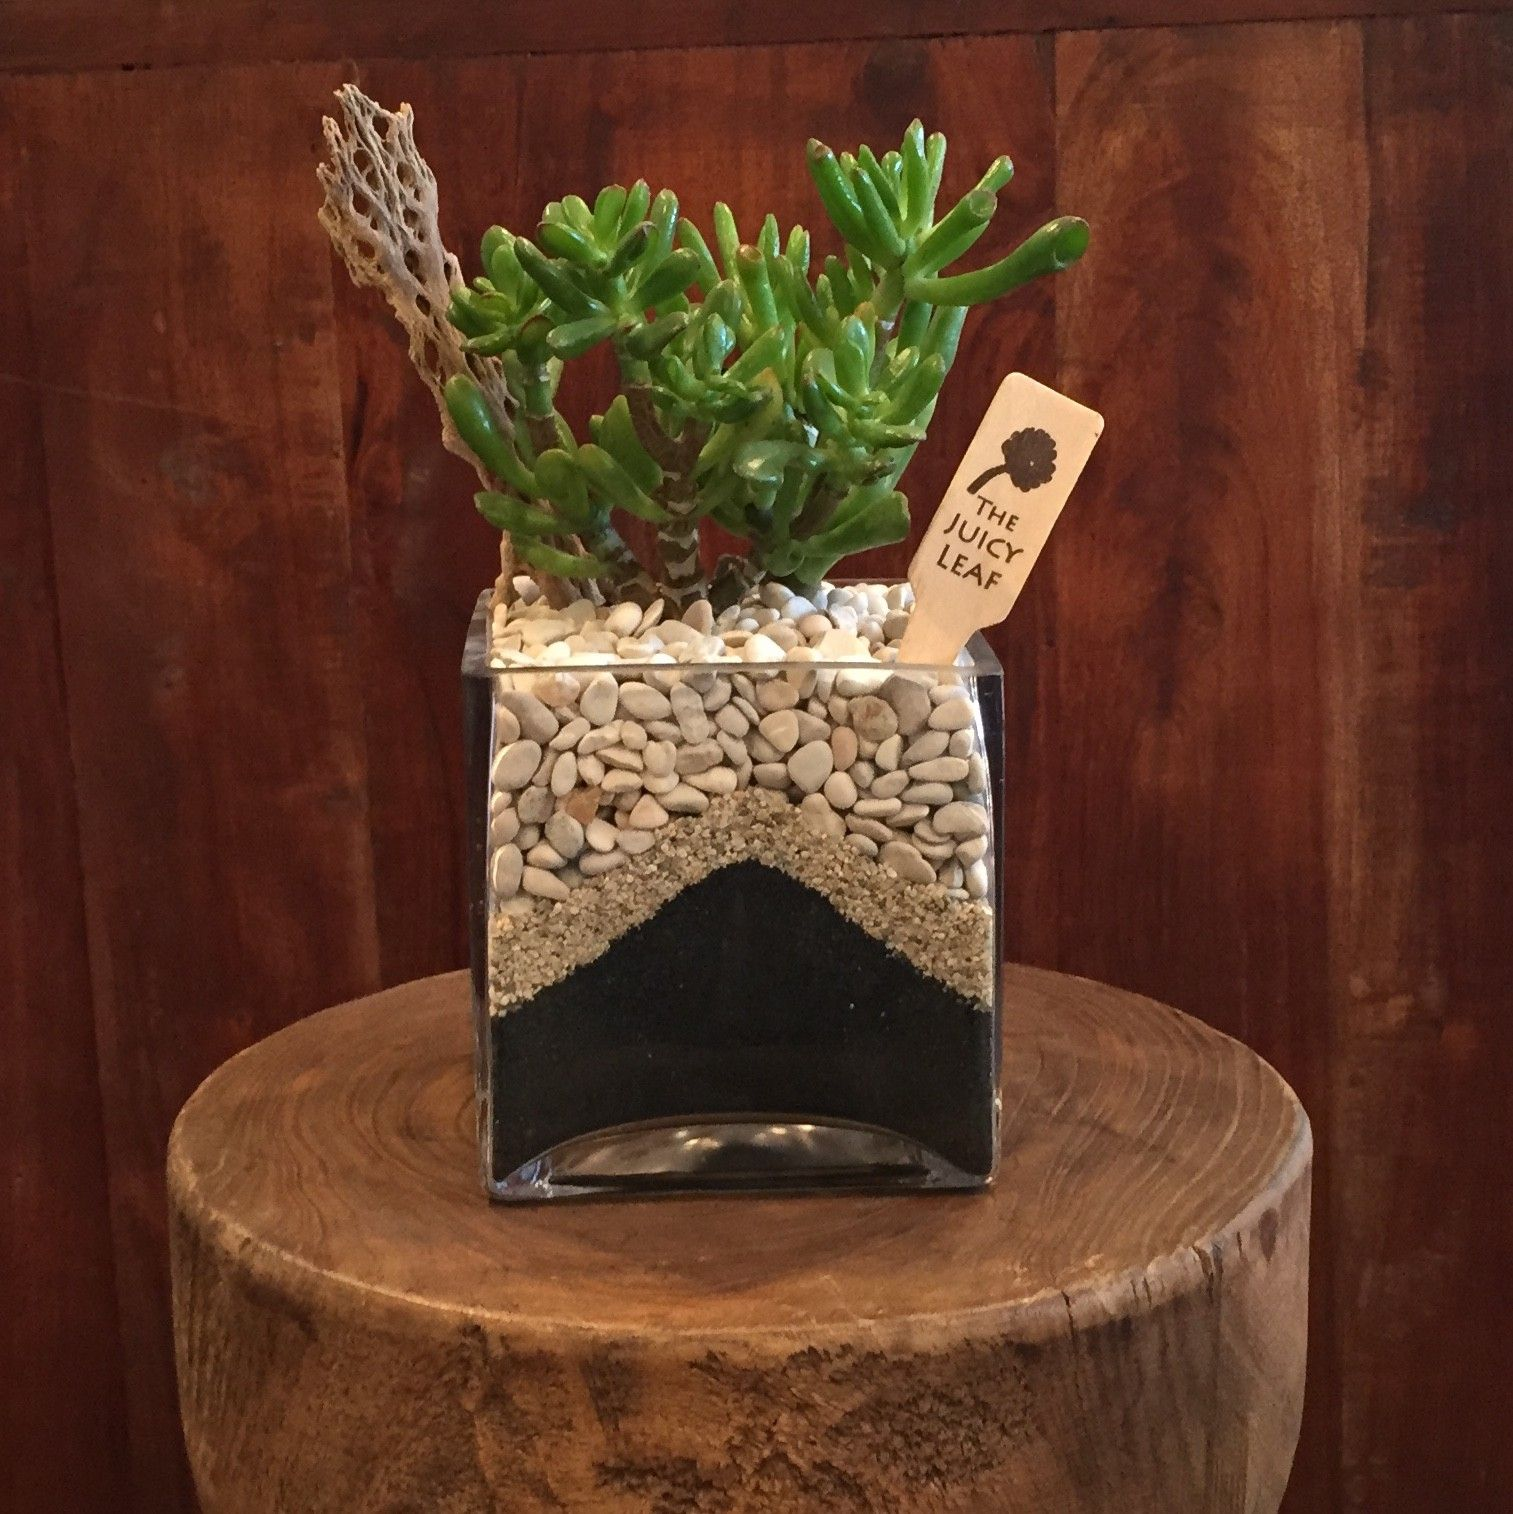 Succulent in a Square Vase with Black Sand & White Rock in